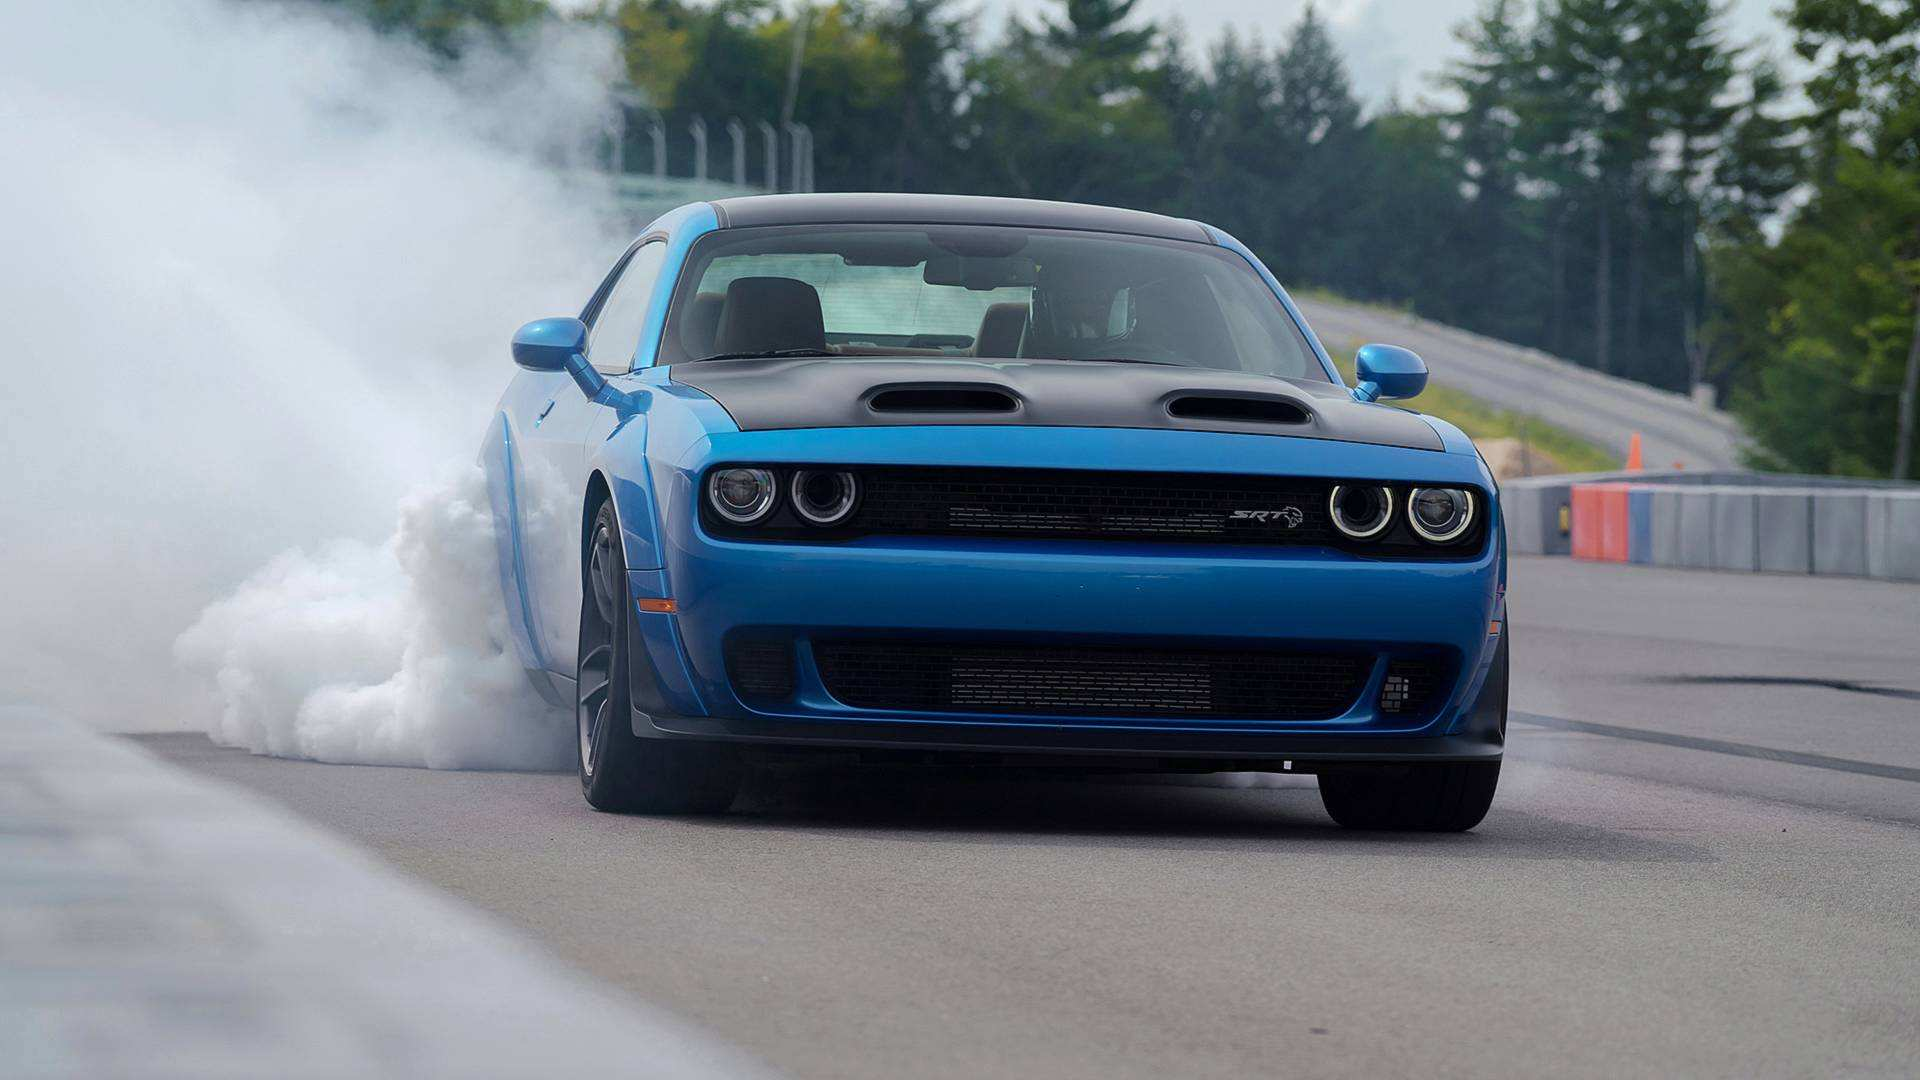 27 A 2019 Challenger Srt8 Hellcat Picture